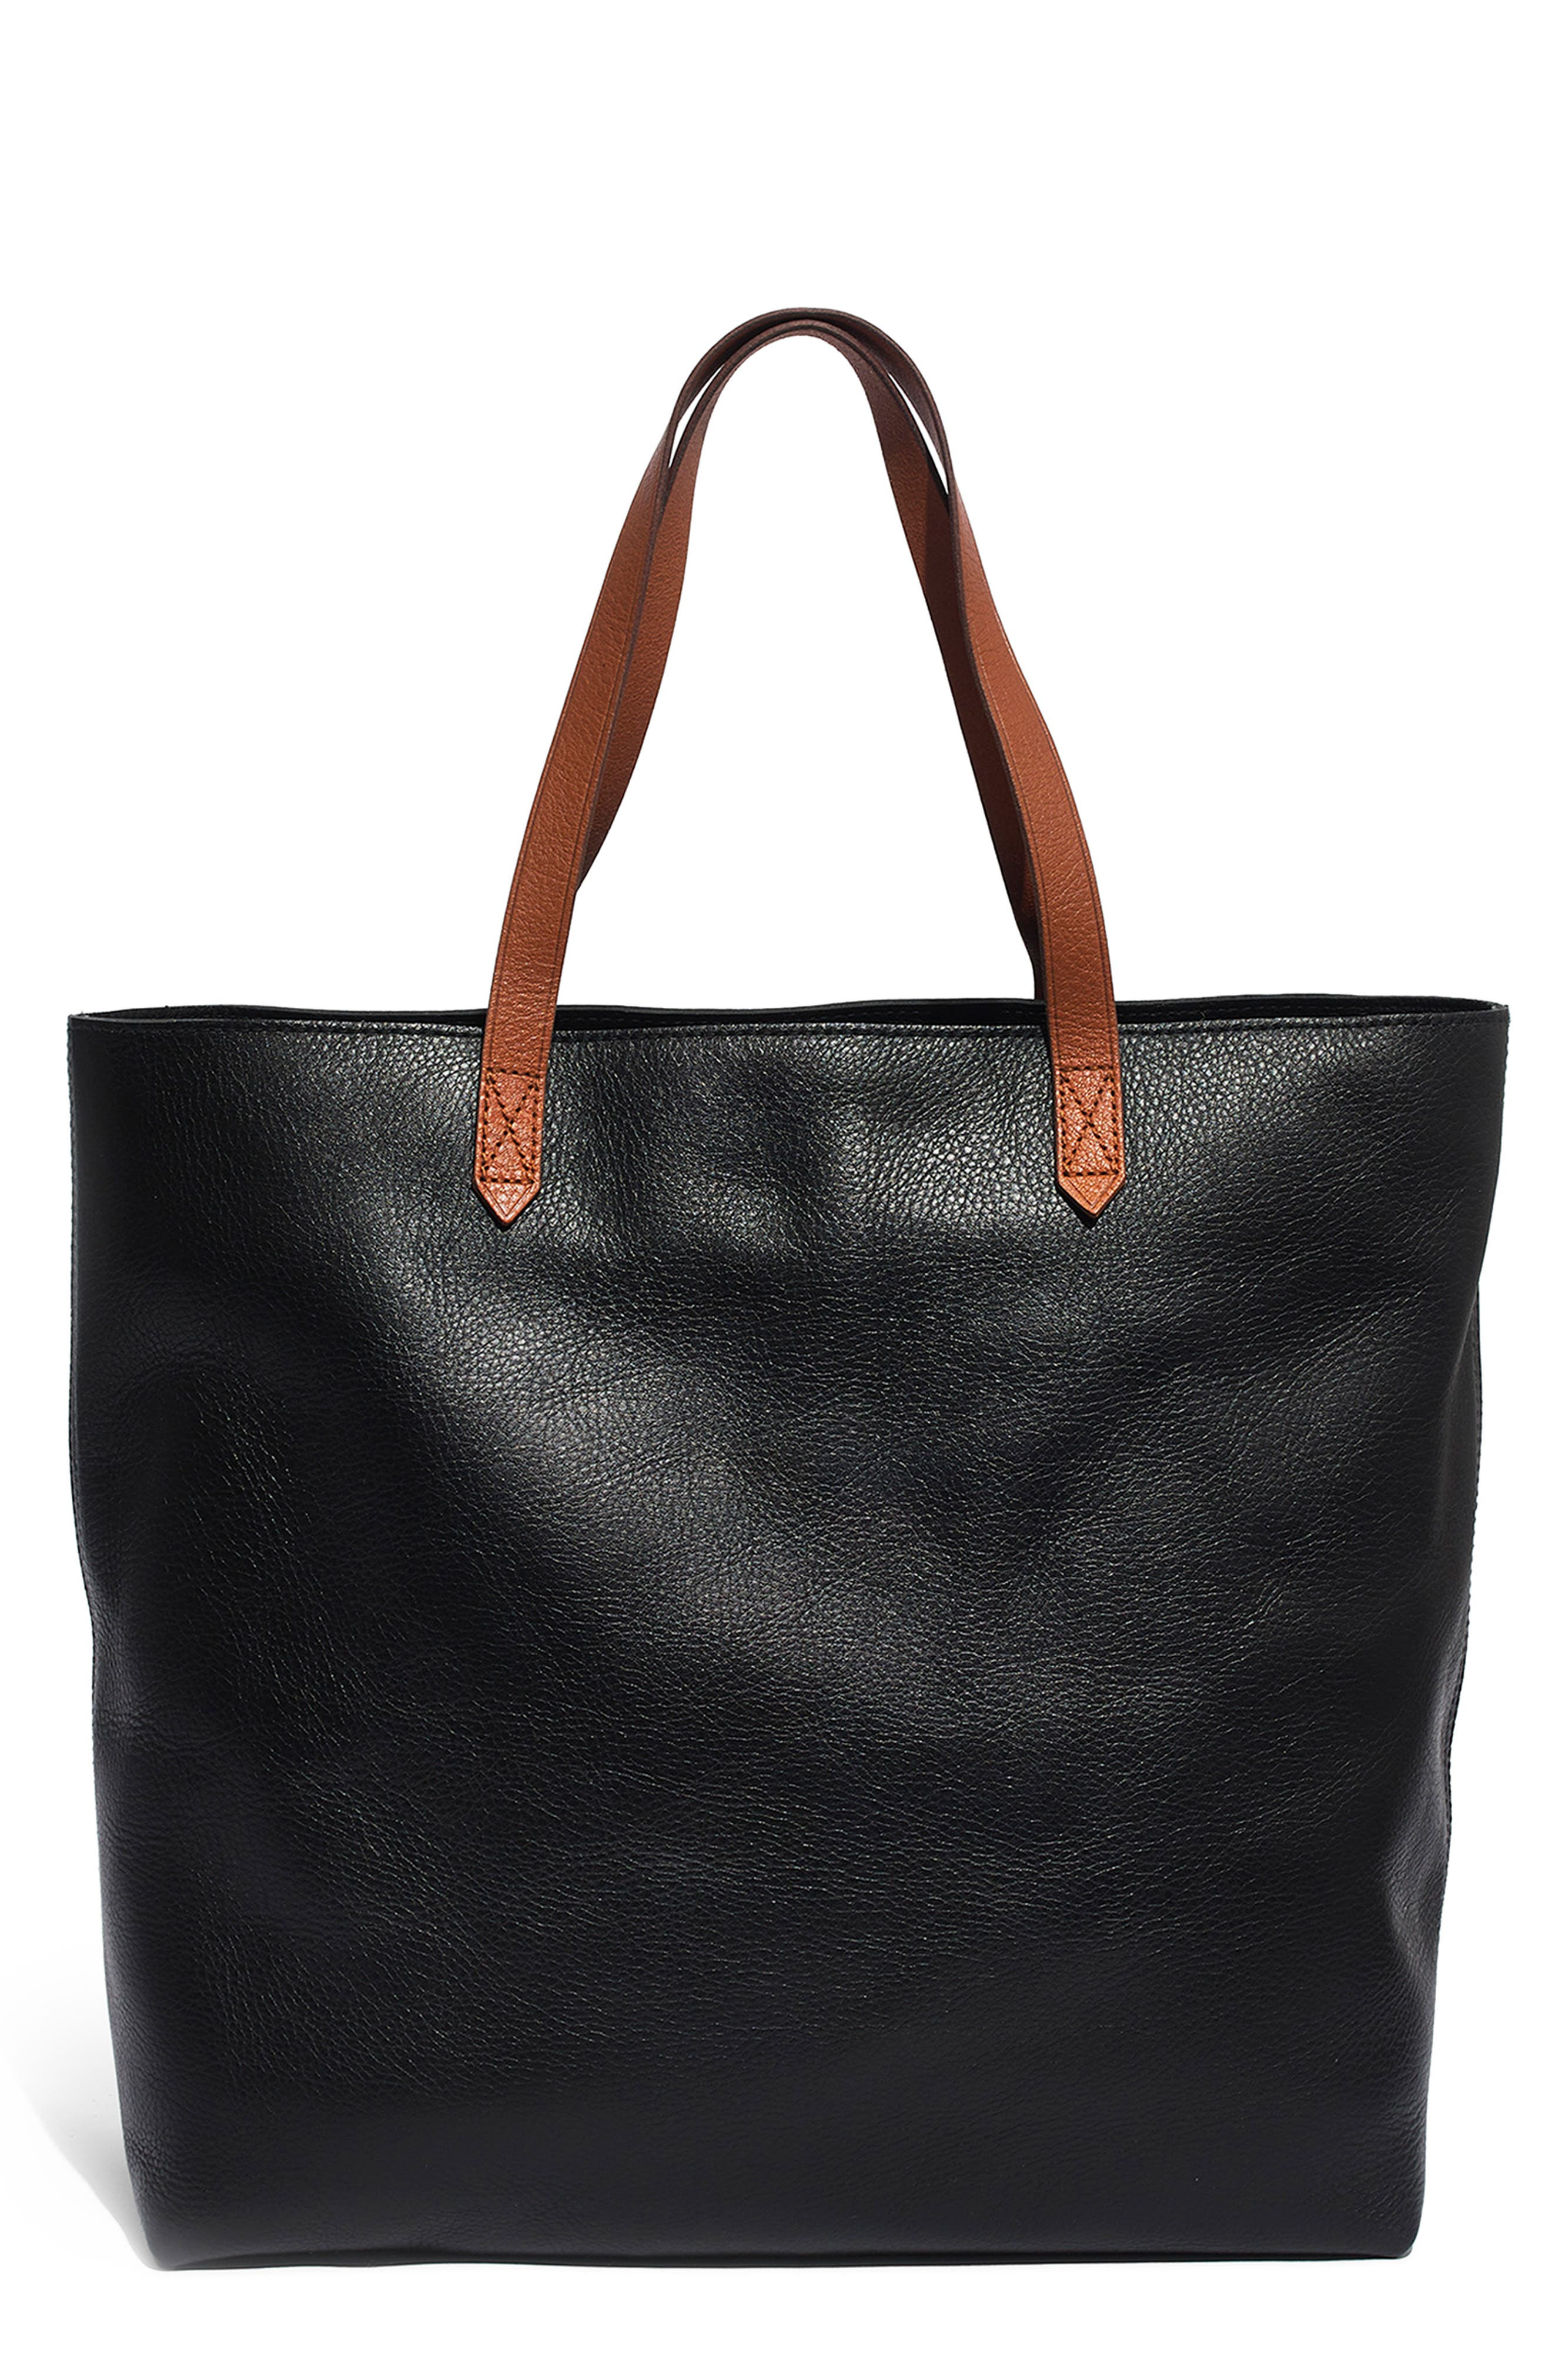 MADEWELL Zip Top Transport Leather Tote, Main, color, TRUE BLACK W/ BROWN